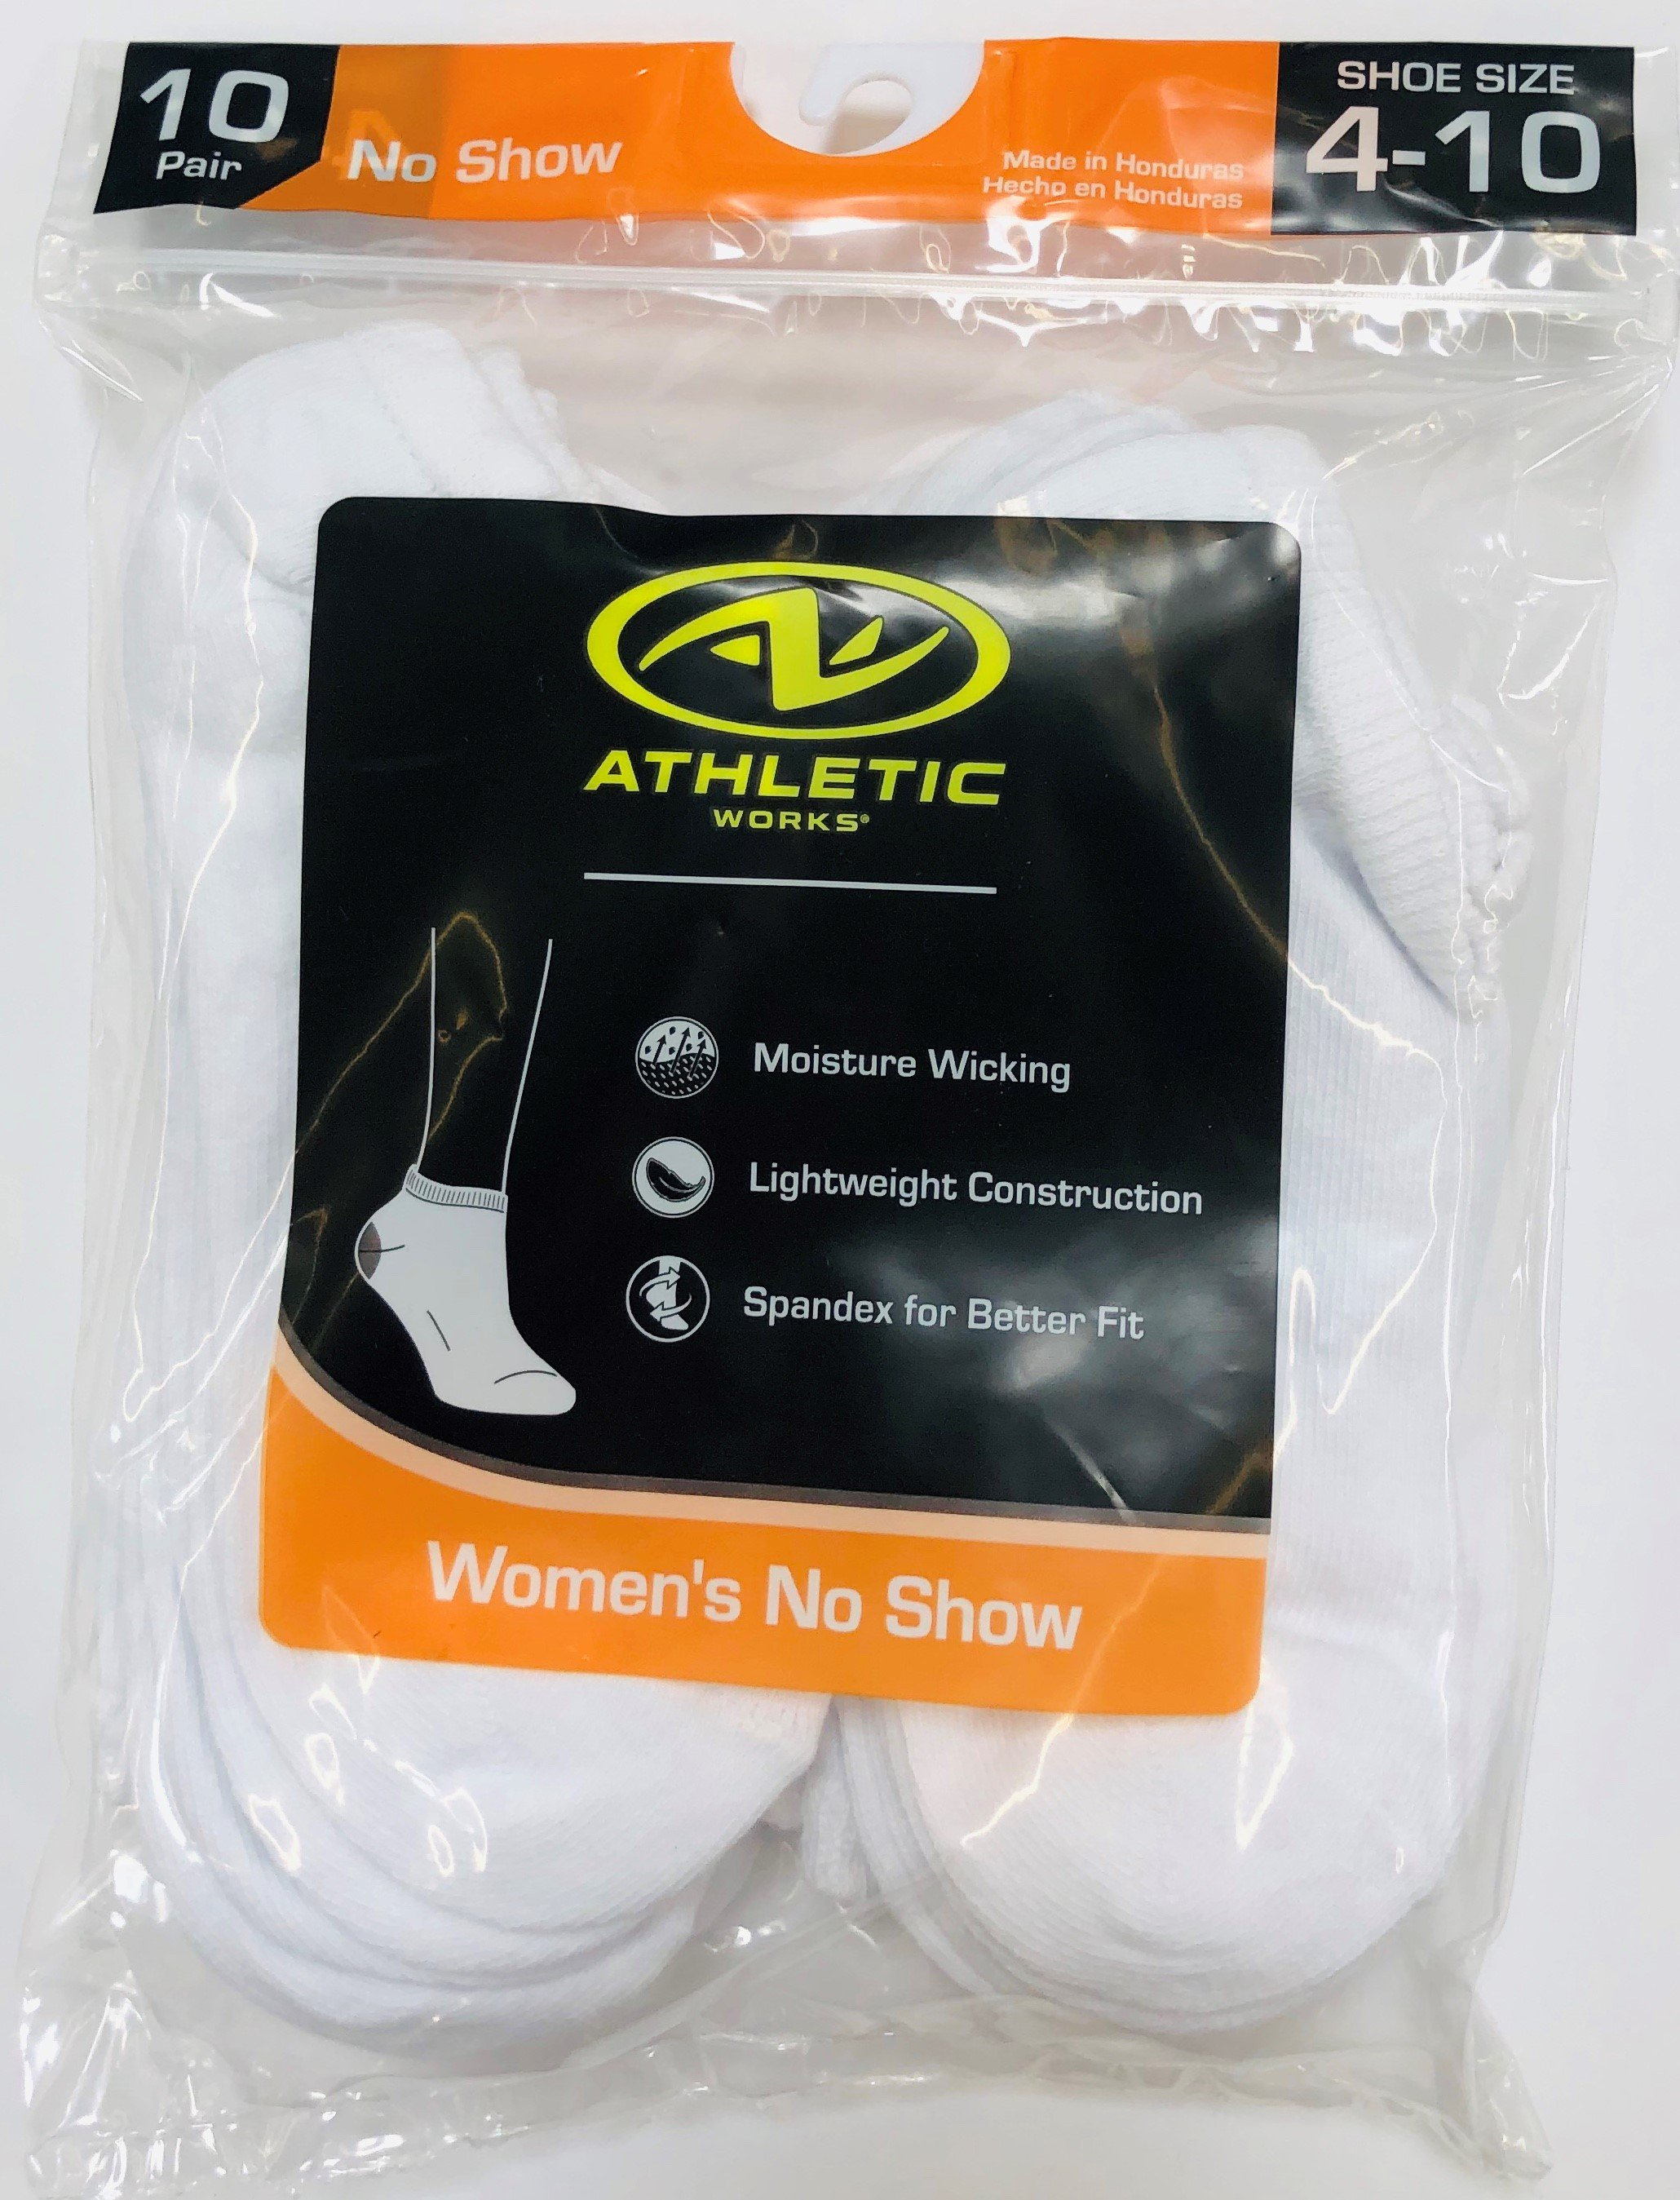 Athletic Works Women's No Show Socks, 10 Pack, 4-10, White